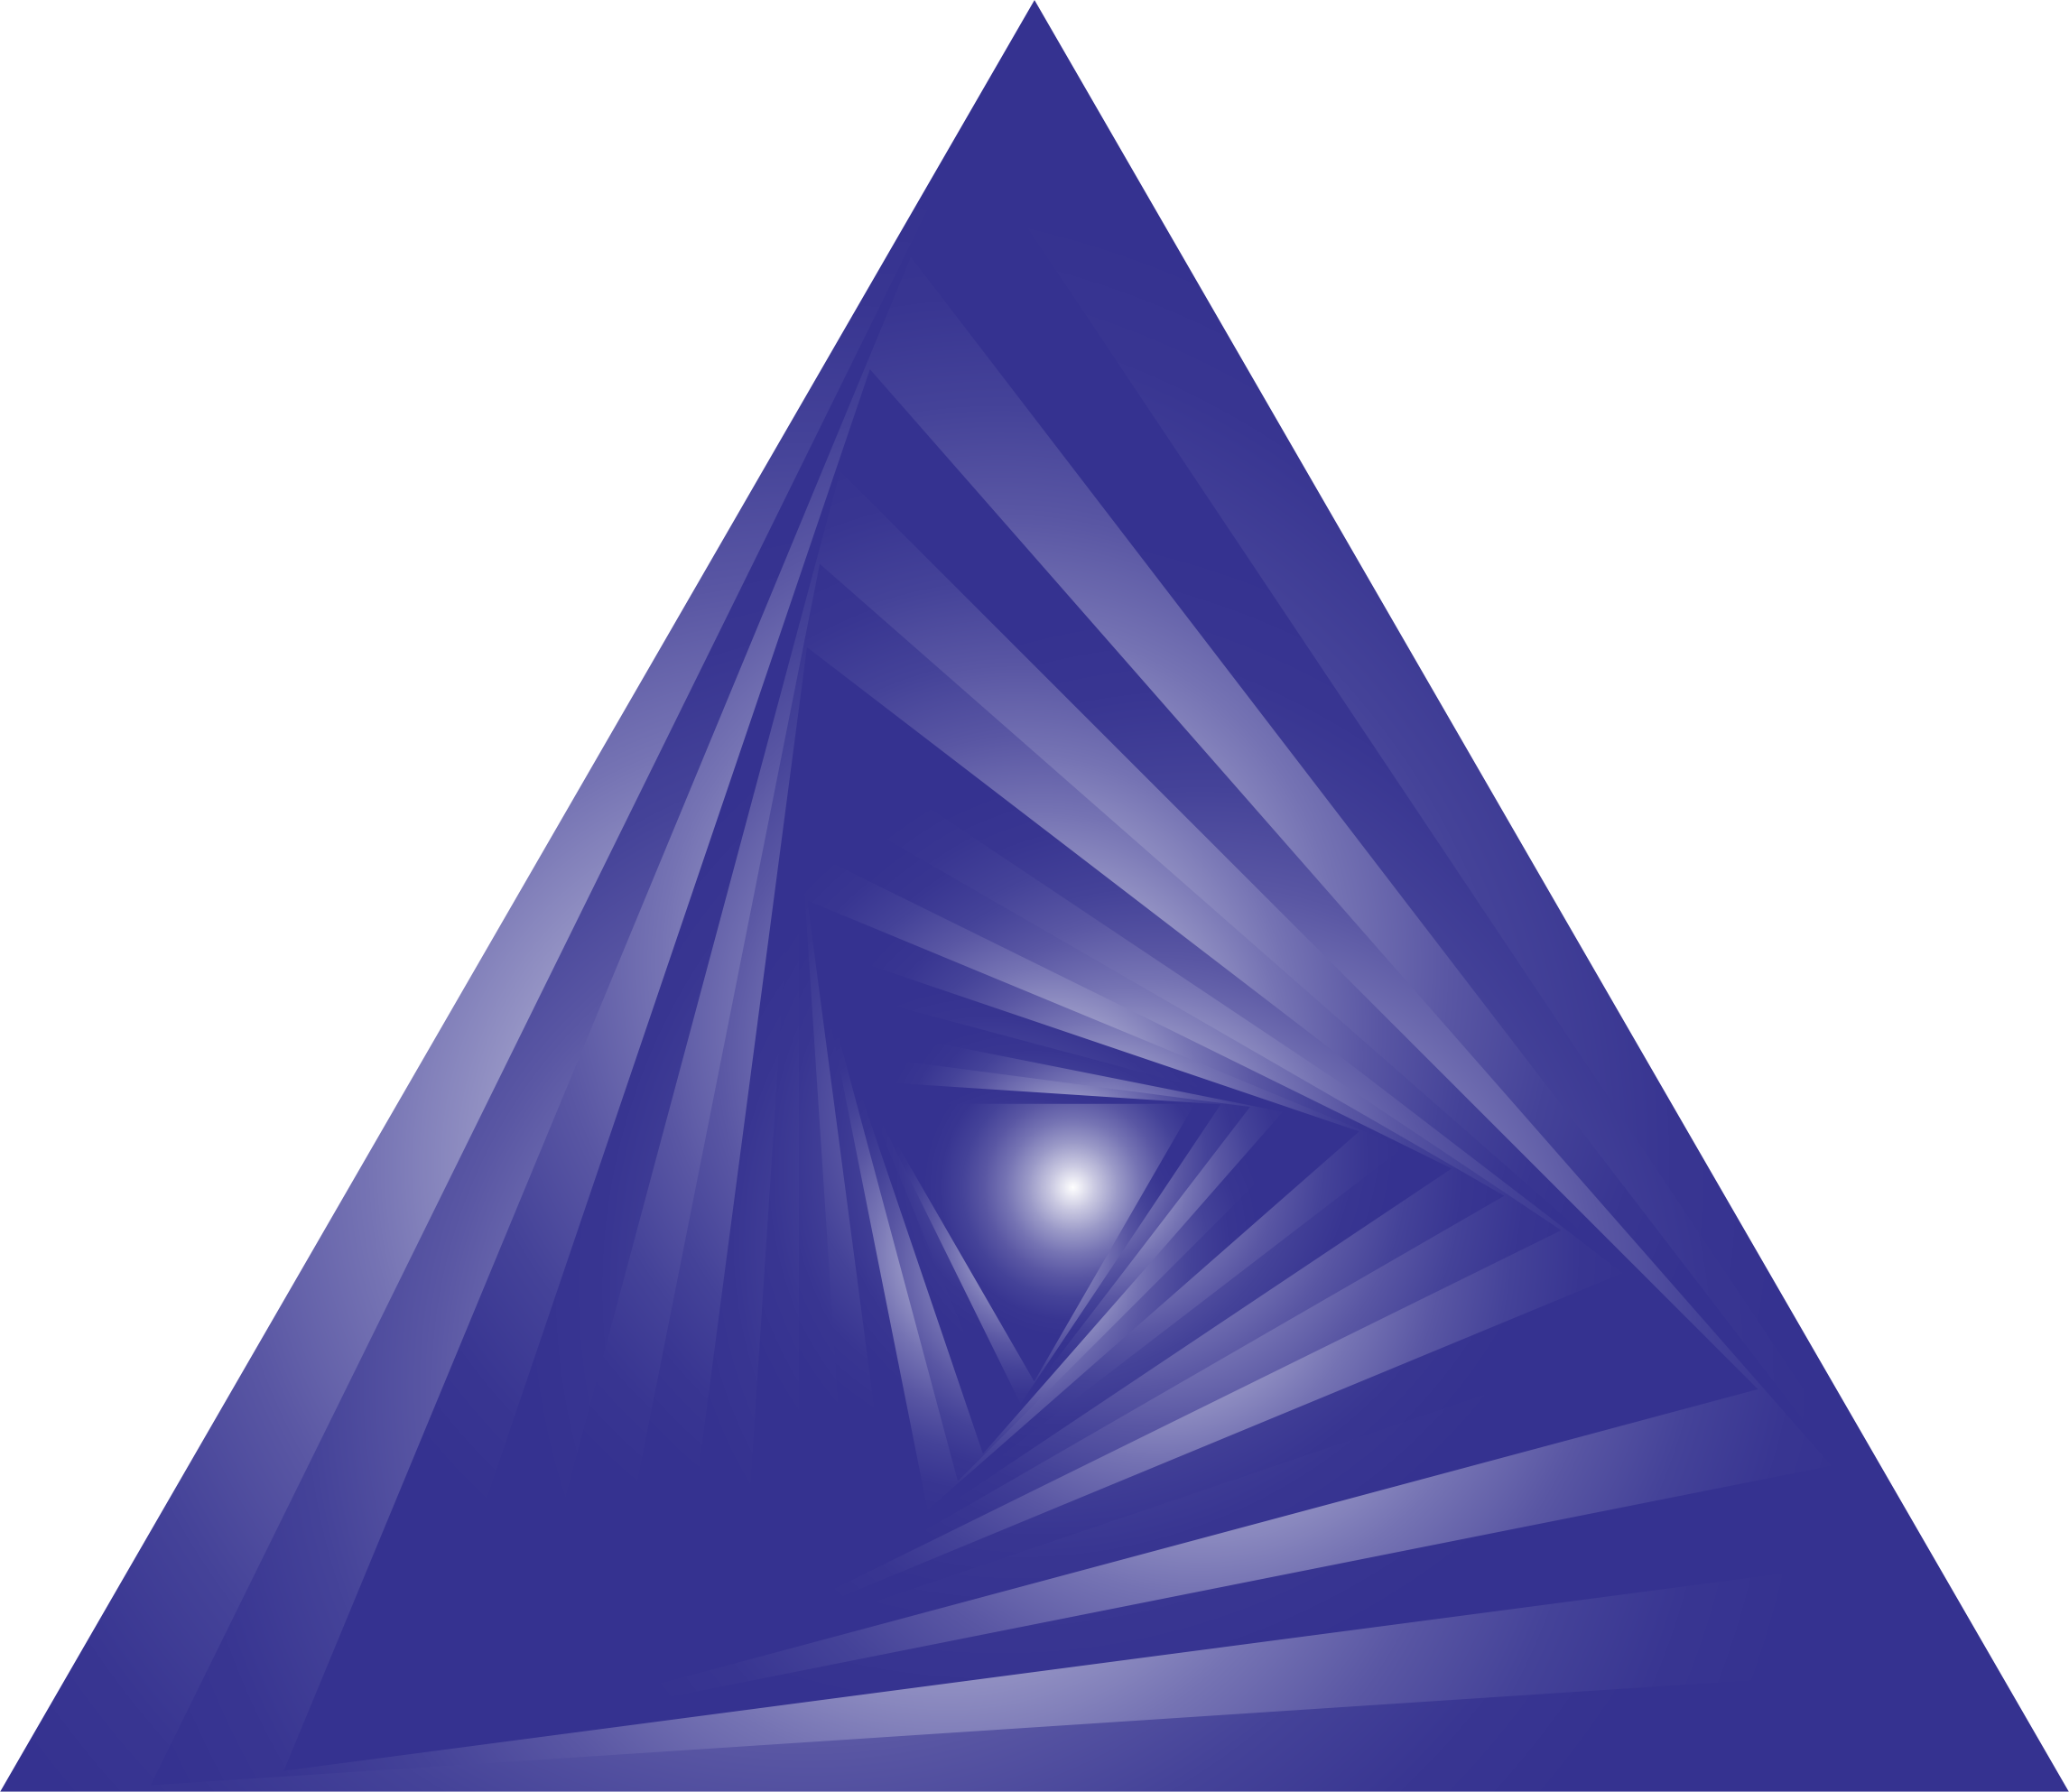 Vortex drawing triangle. Evil eye icons png